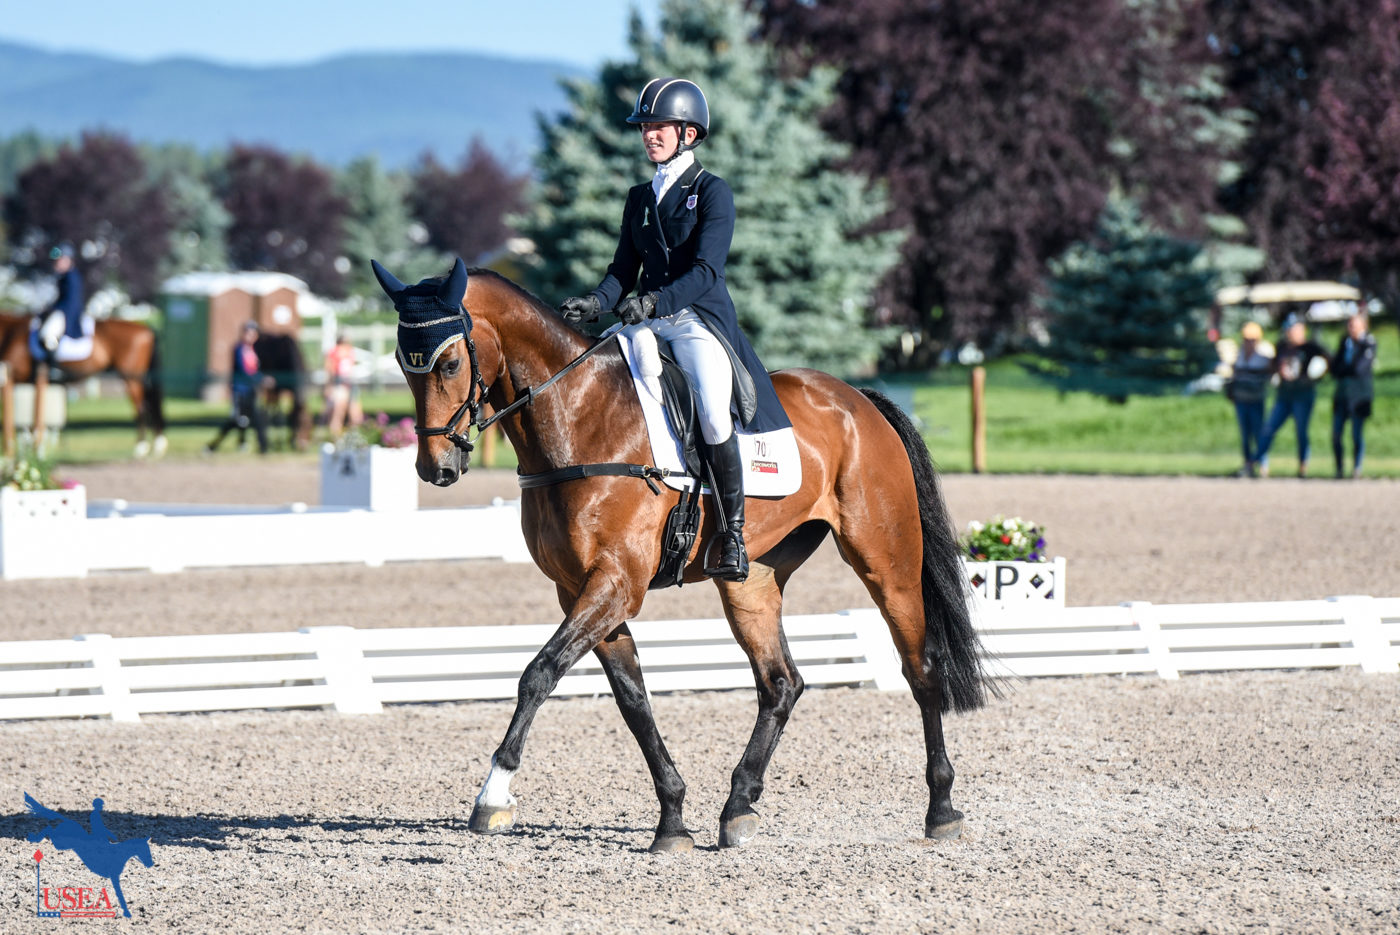 2ndT - Meg Pellegrini and RF Eloquence - 24.9 (Area VI)